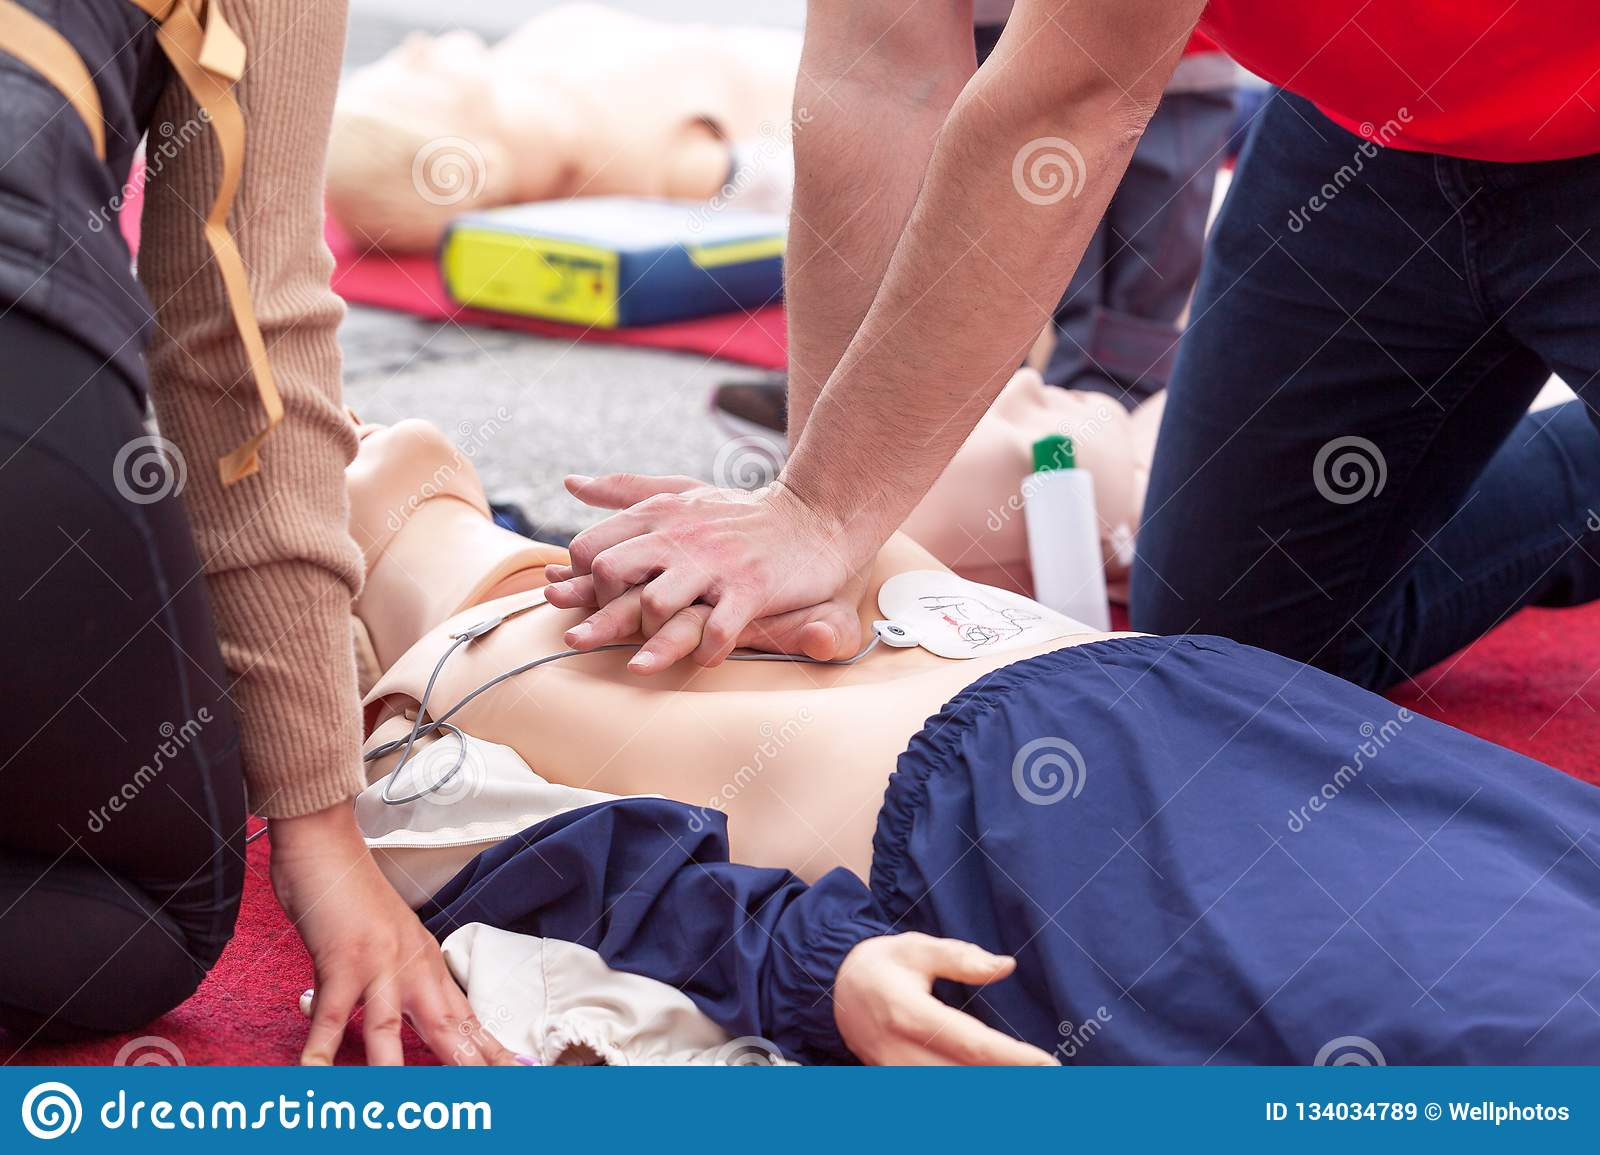 9fef3bbd83 Cardiopulmonary resuscitation - CPR course using automated external  defibrillator device - AED on a dummy